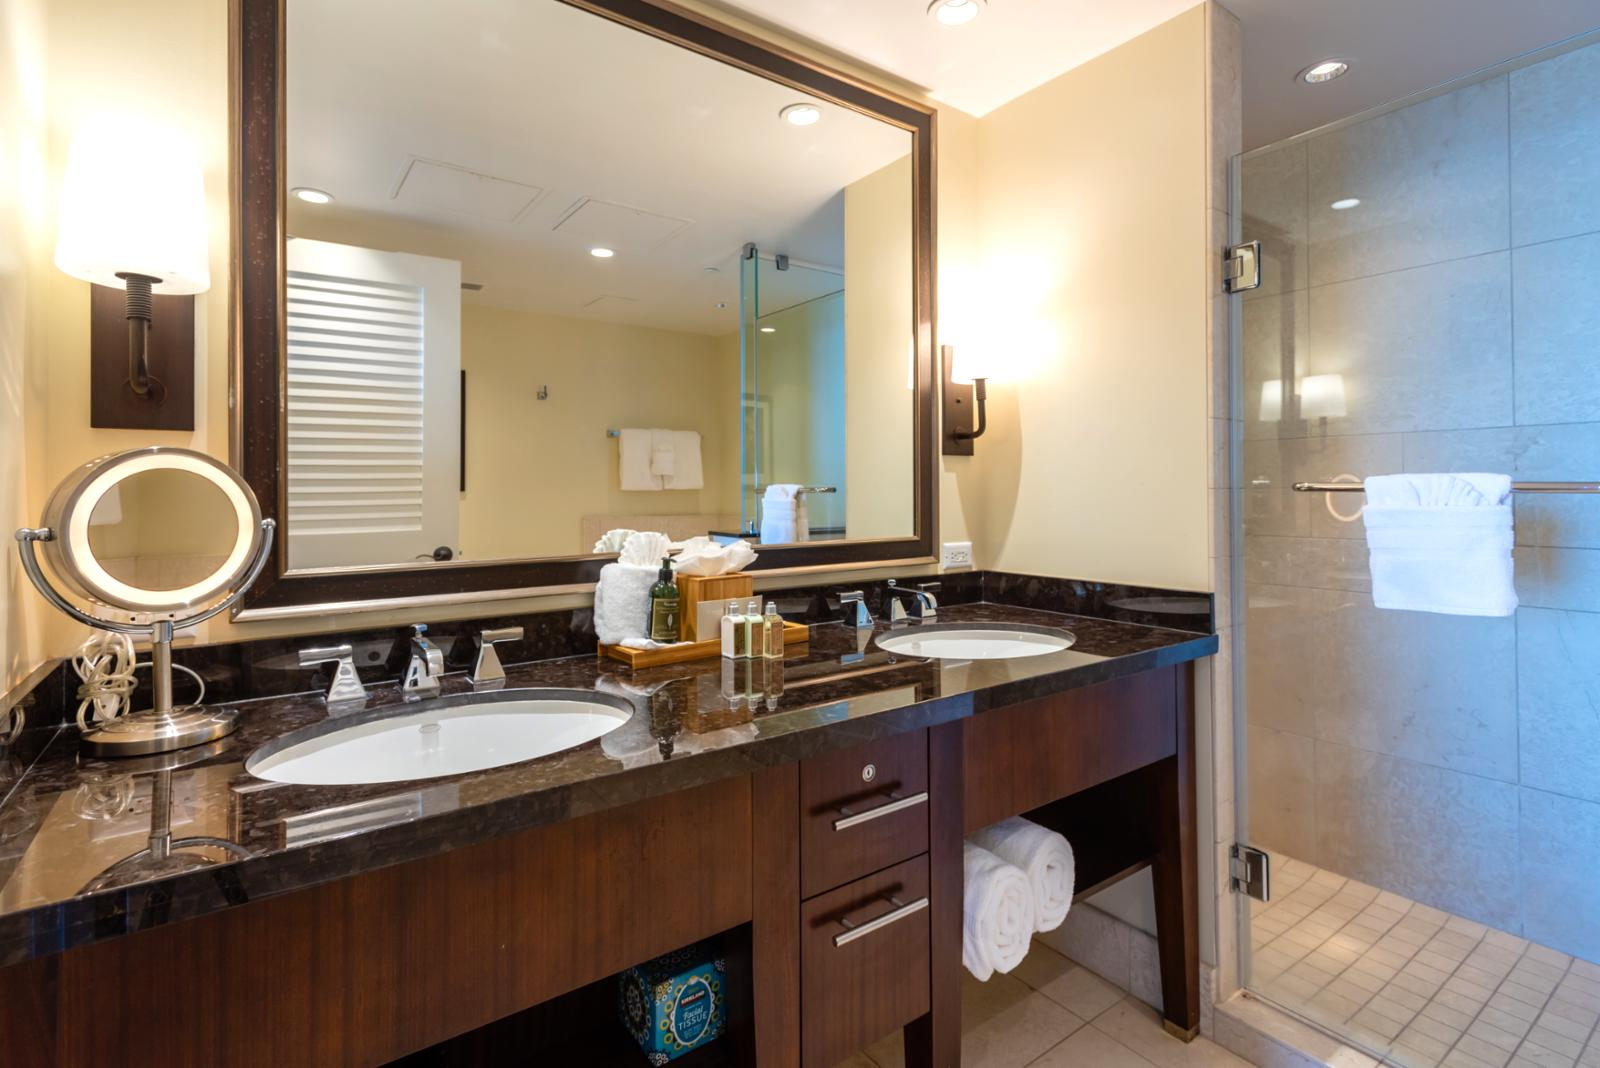 Dual sinks with large glass shower entry